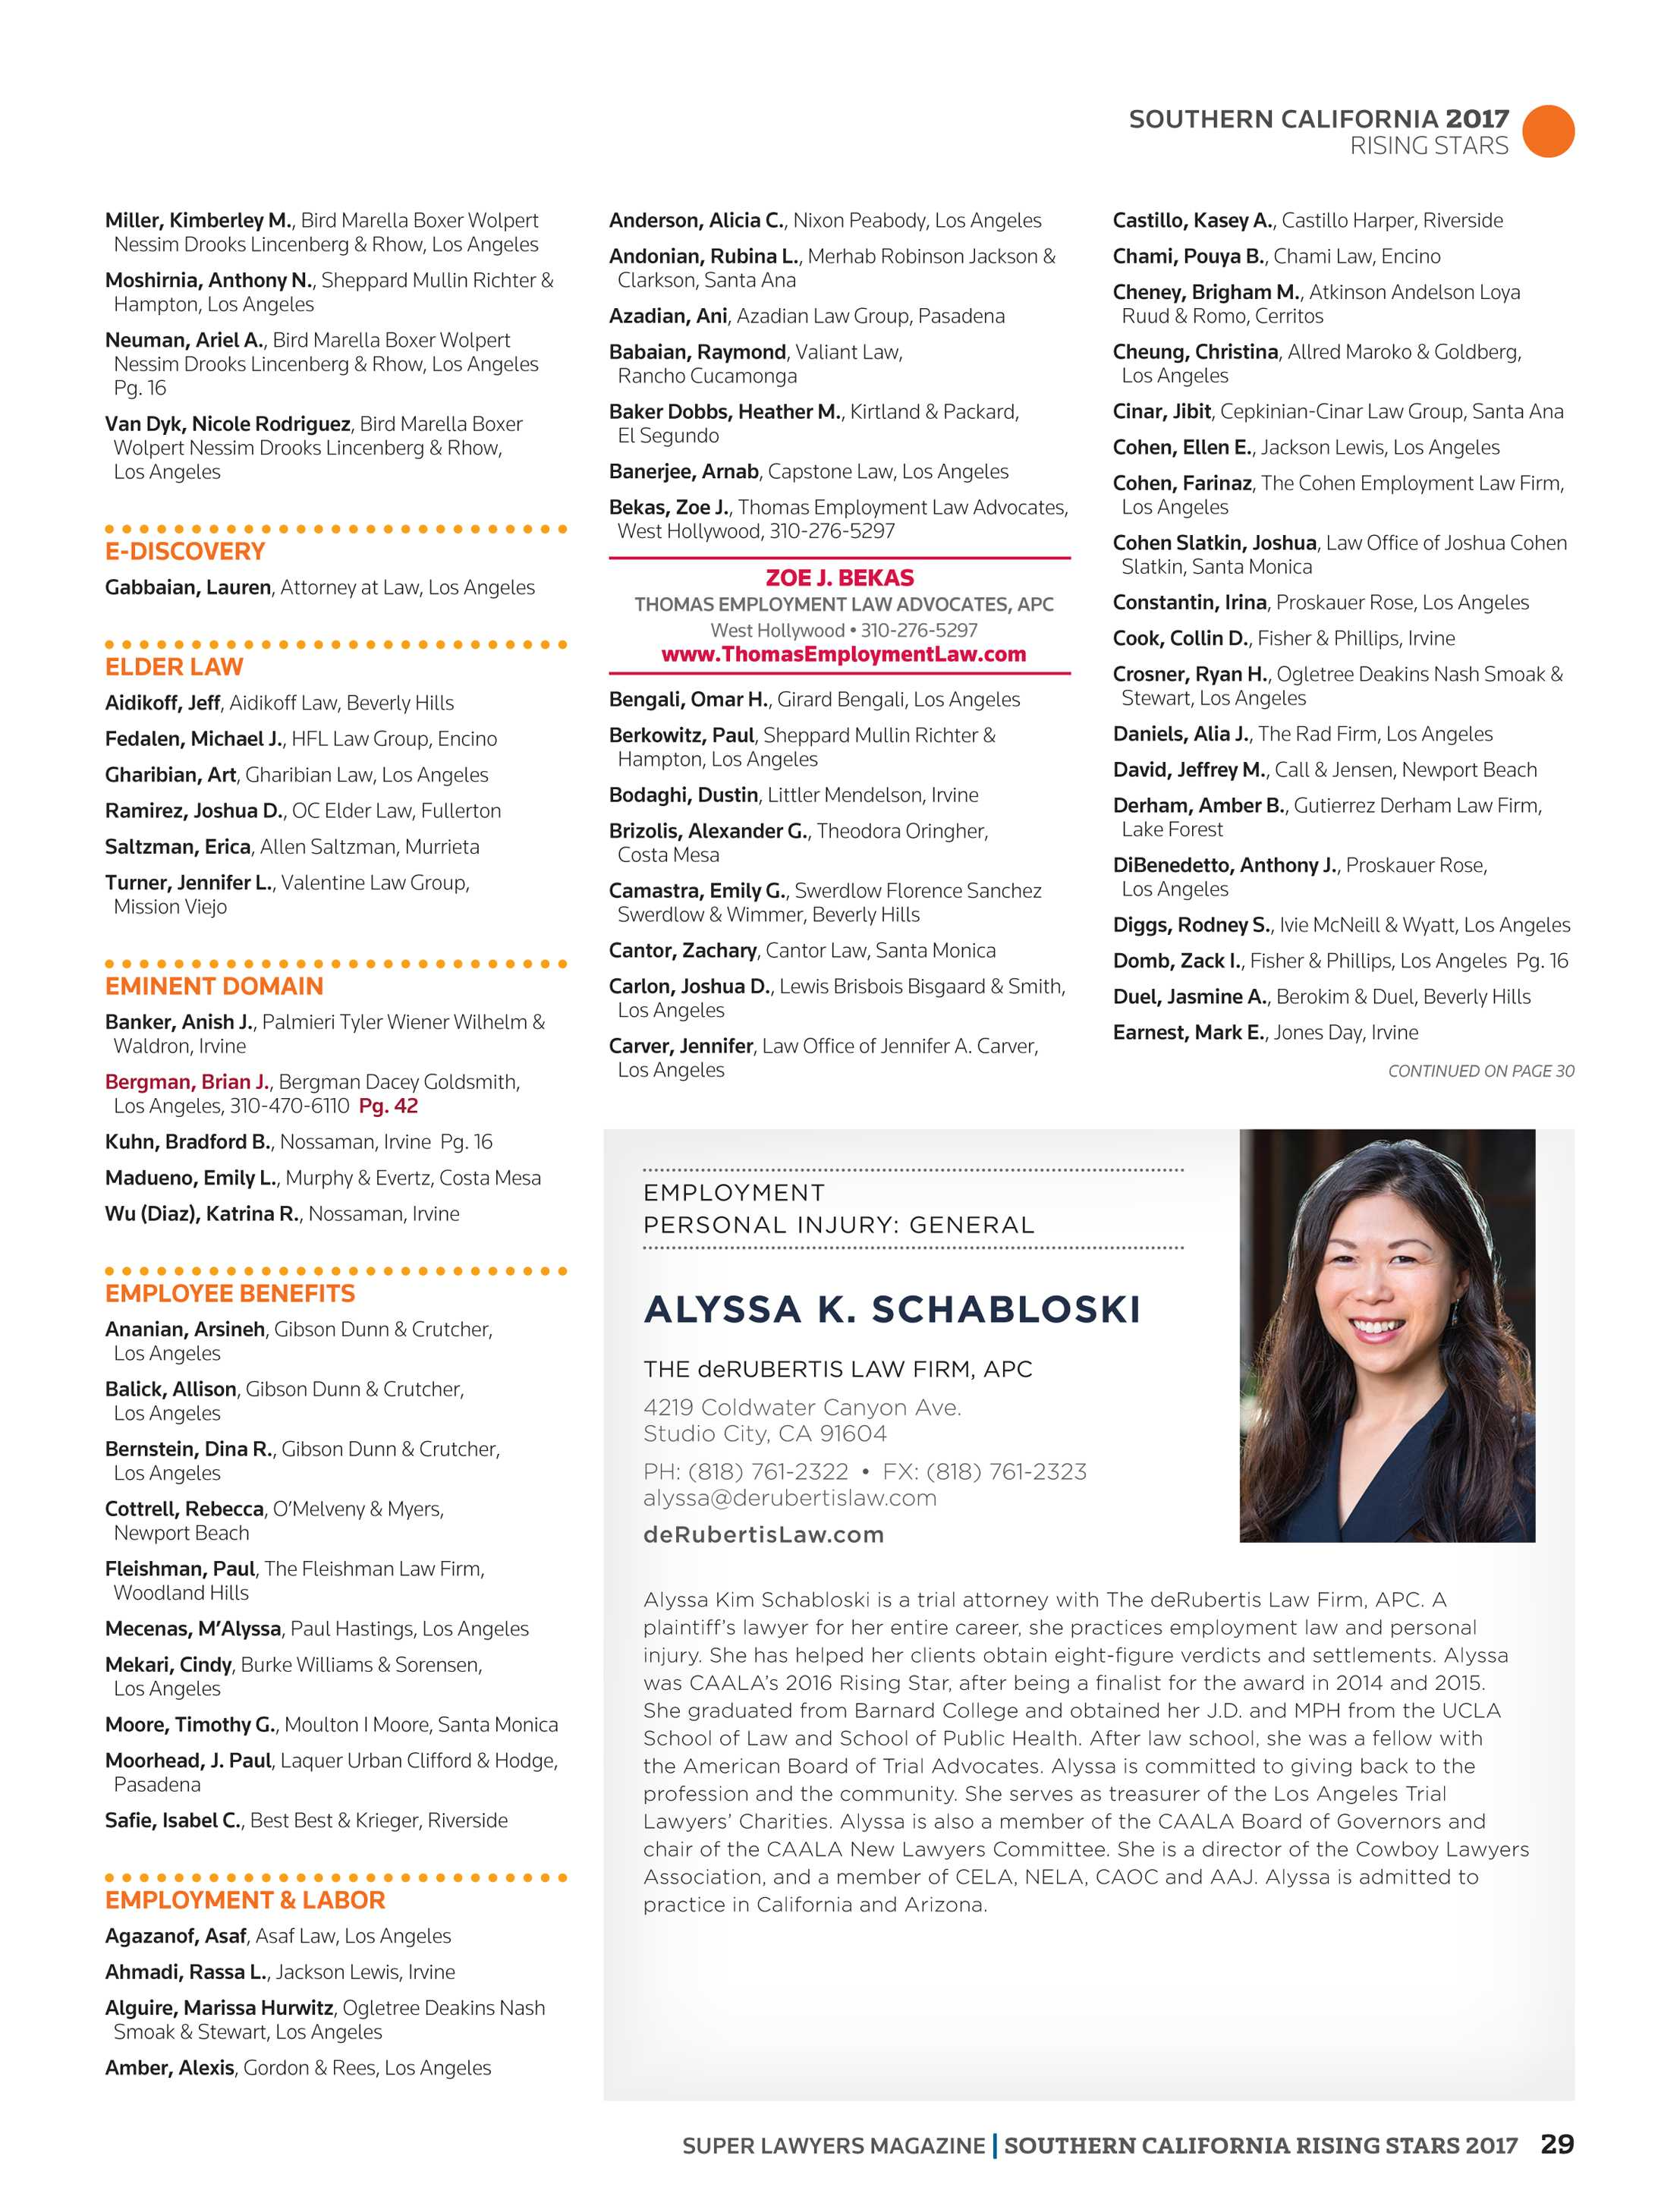 Super Lawyers Southern California Rising Stars 2017 Page 29